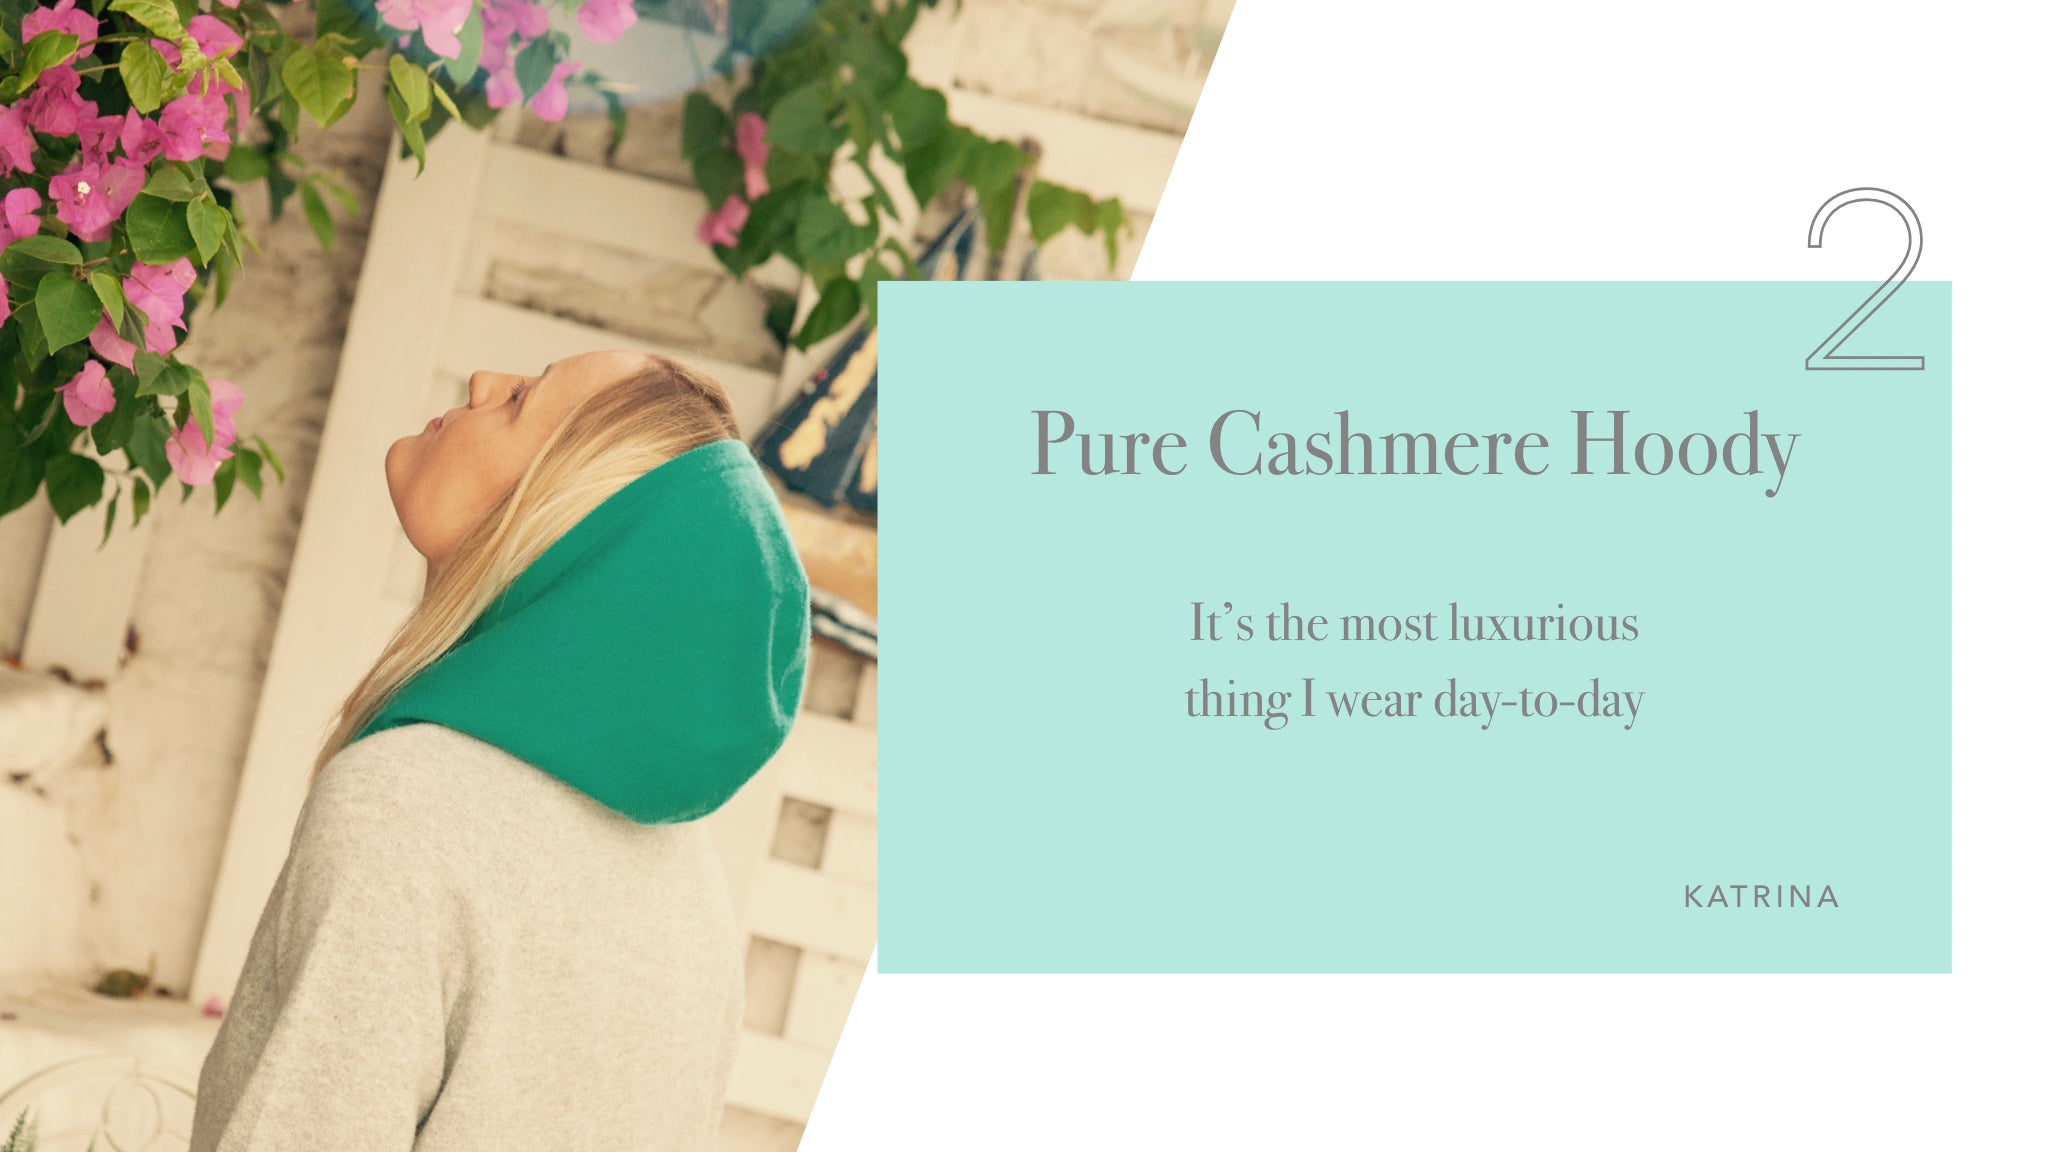 Turquoise cashmere hoody